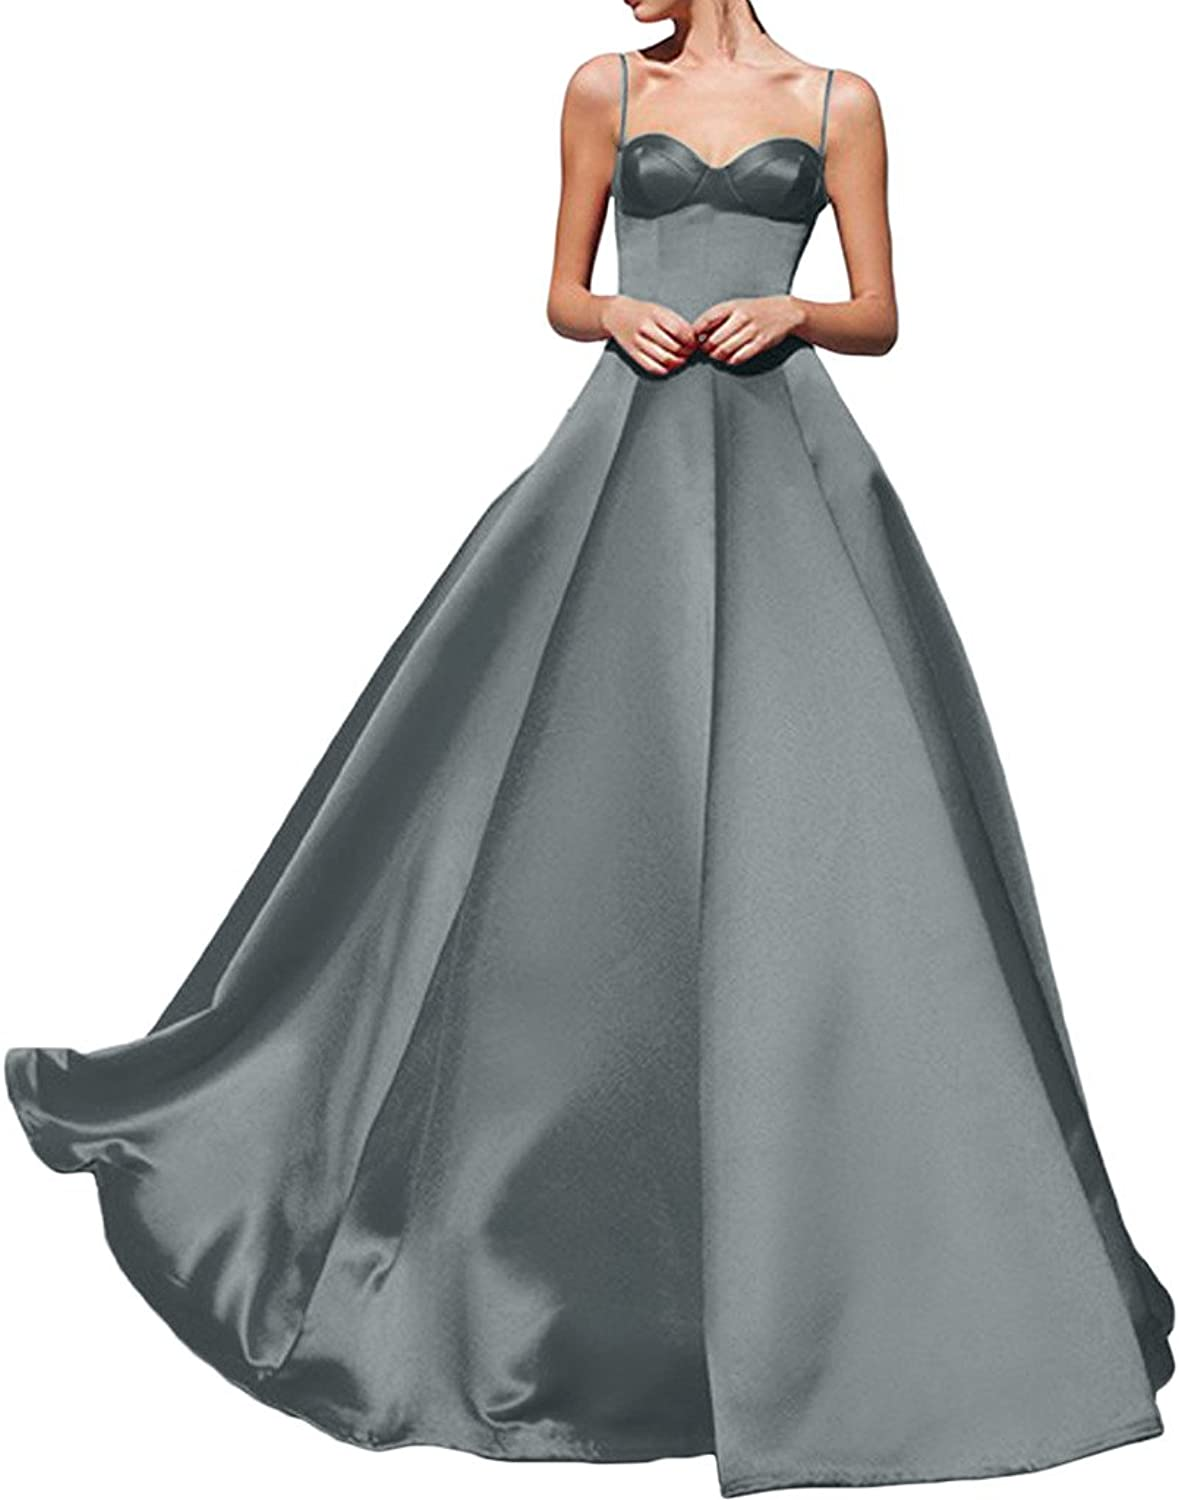 Avril Dress Sexy Spaghhetti Evening Satin Gown Party Prom Dress New